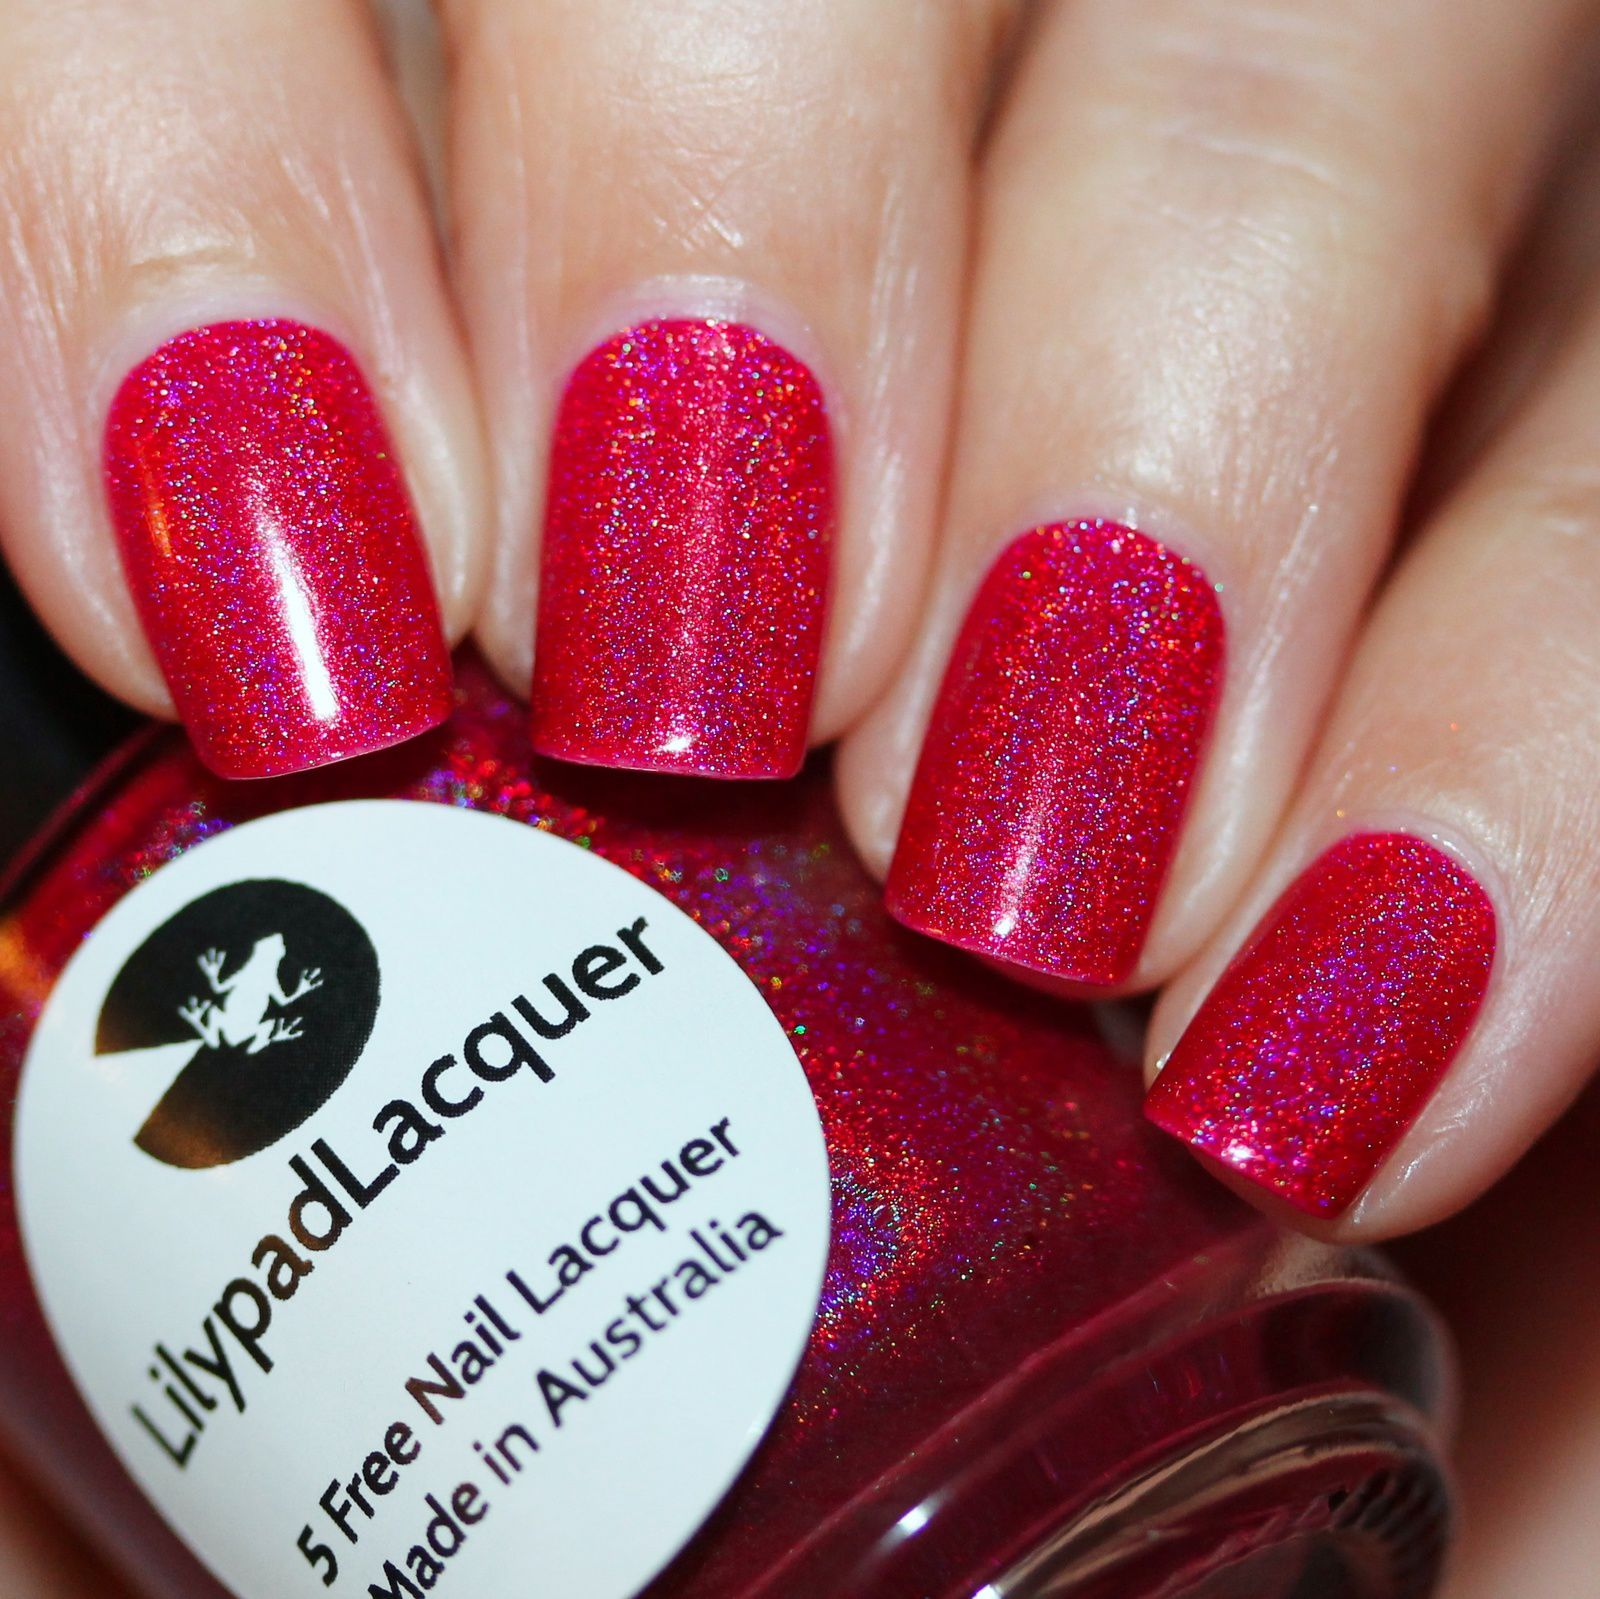 Essie Protein Base Coat / Lilypad Lacquer Ruby Slippers ...